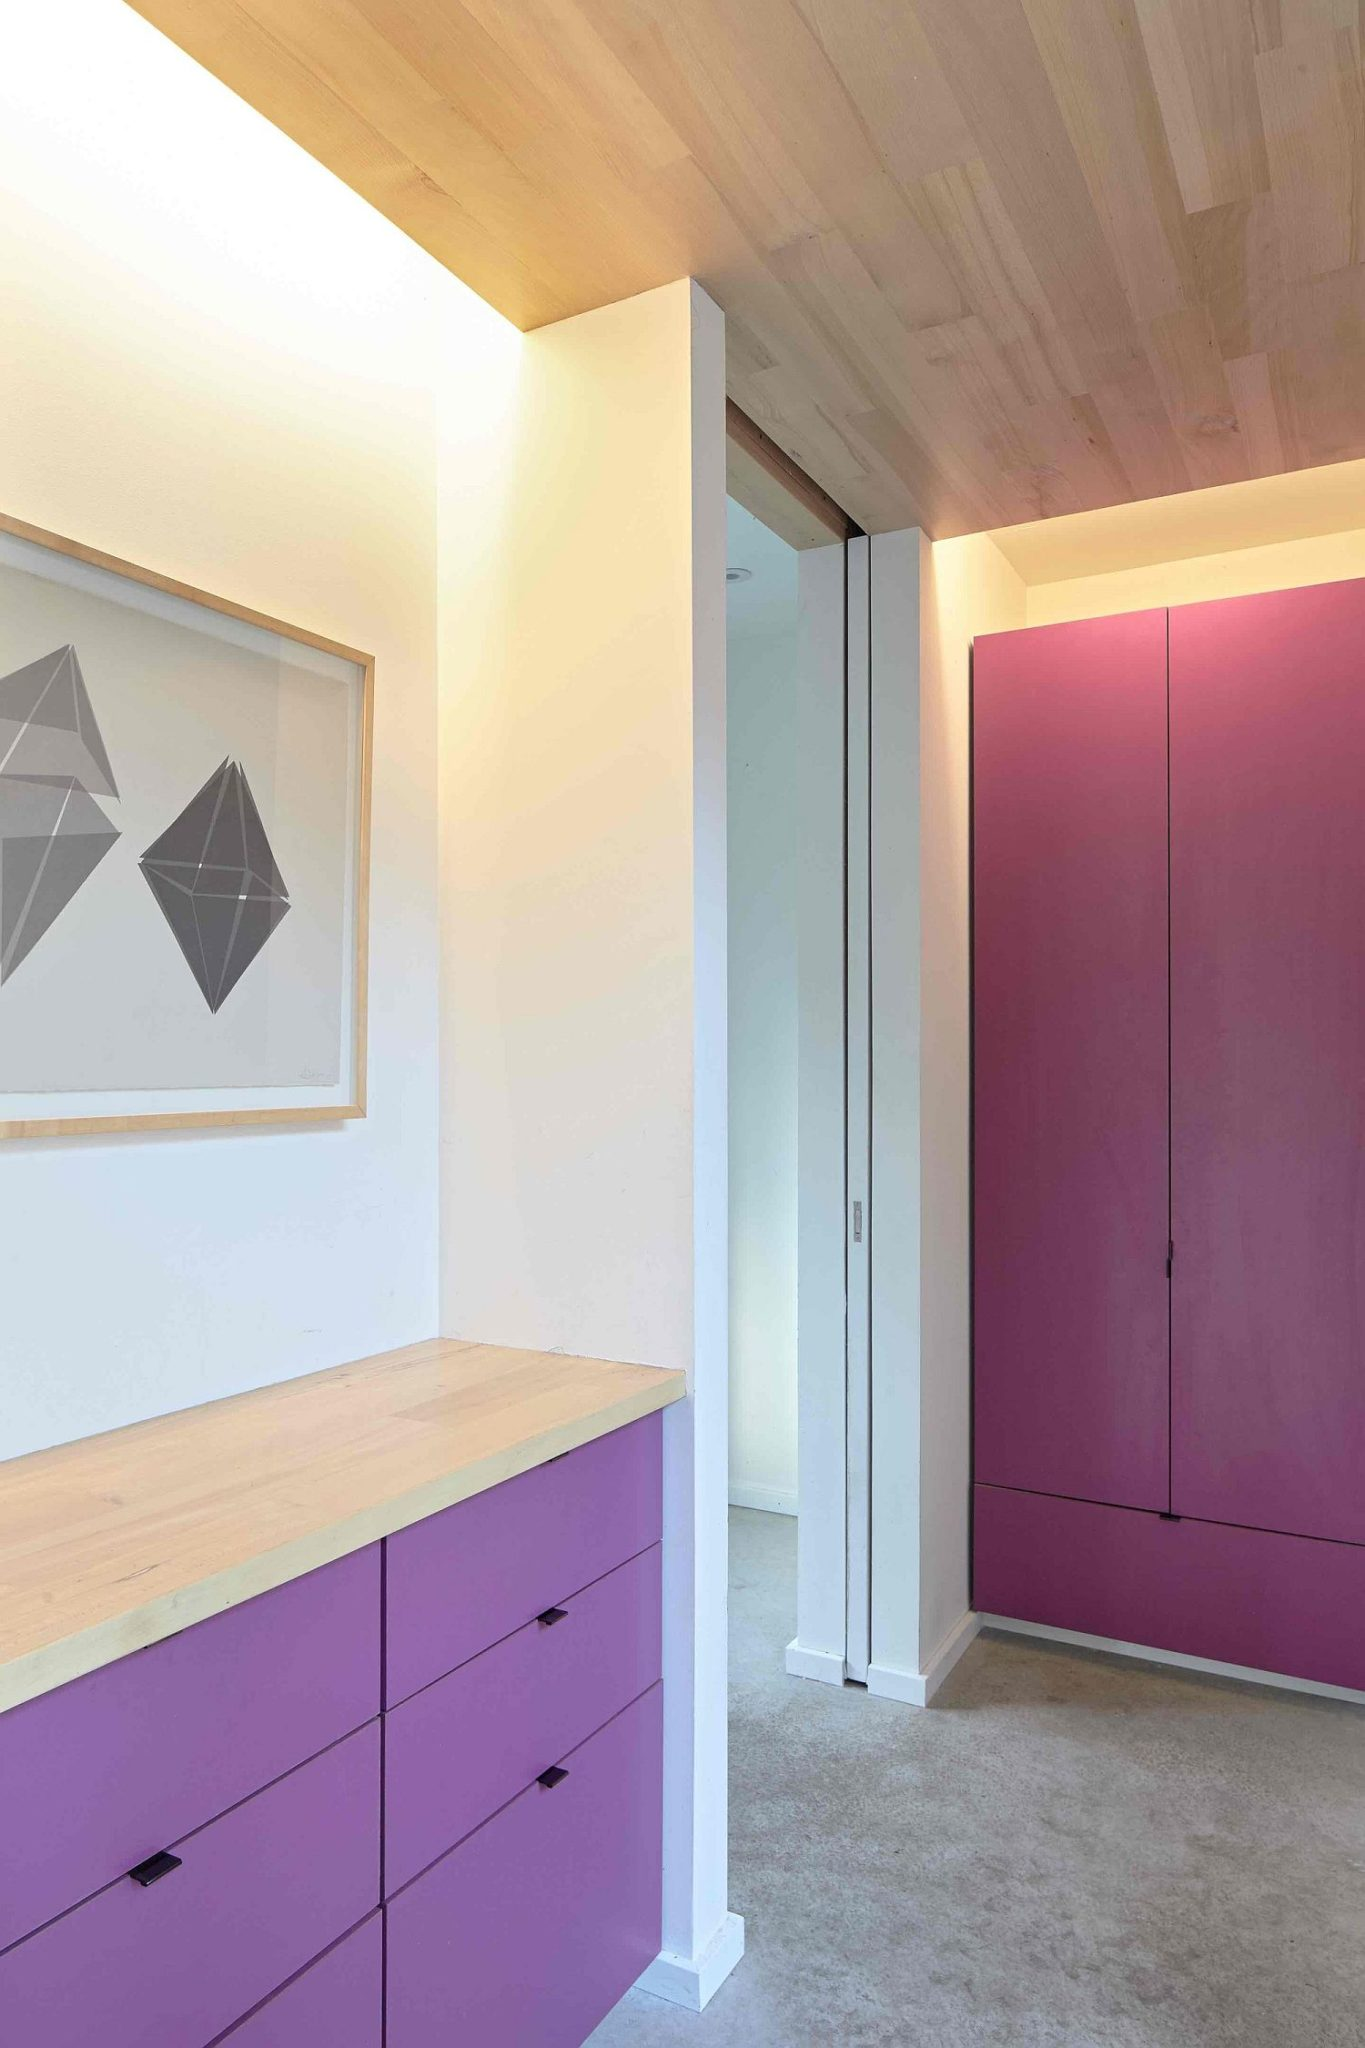 Purple brings color and brightness to the neutral interior